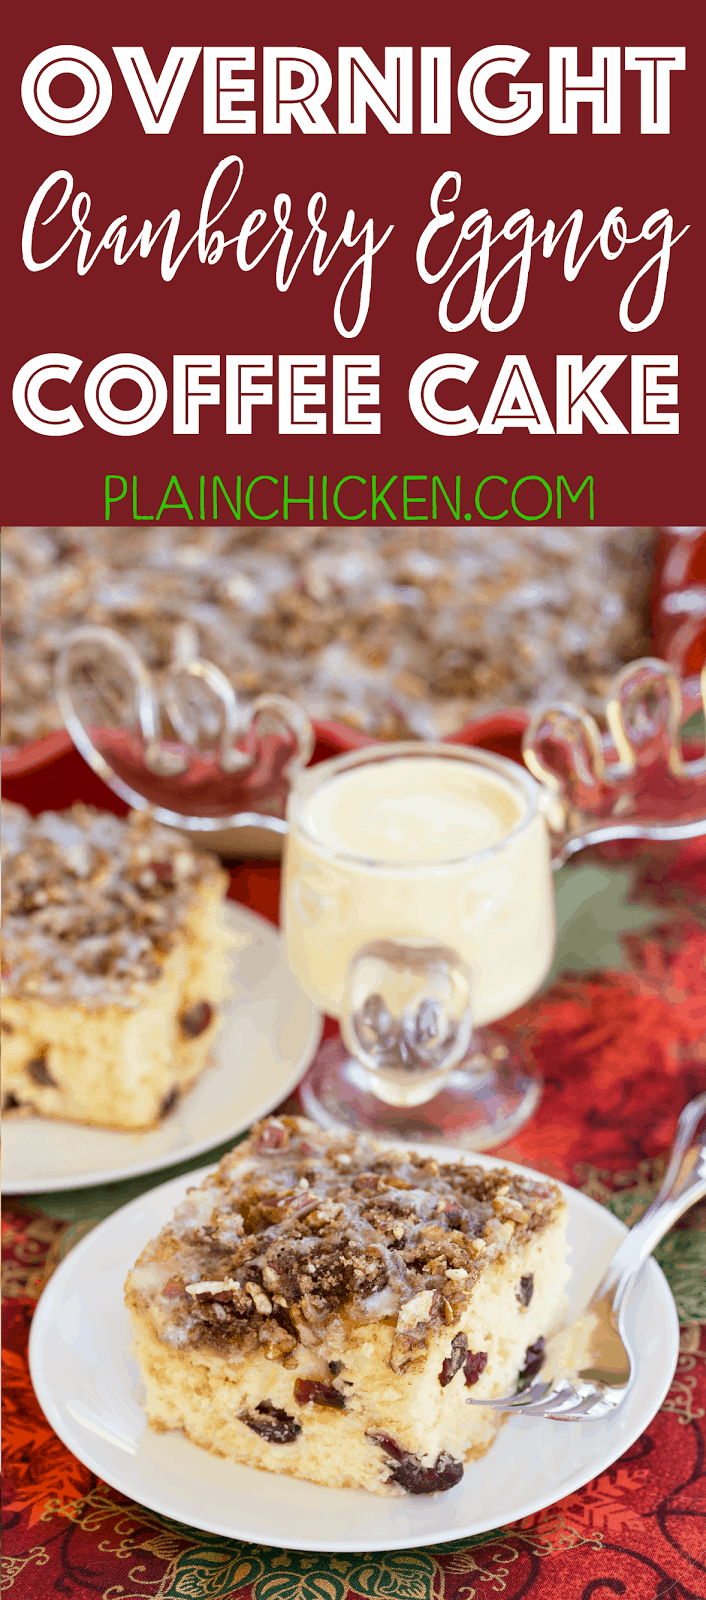 Overnight Cranberry Eggnog Coffee Cake - refrigerate batter overnight and bake in the morning. This cake is SOOOO good! I don't even like eggnog, but I LOVED this cake! Butter, sugar, eggs, eggnog, sour cream, vanilla, flour, orange extract, dried cranberries, cinnamon, brown sugar and pecans. This is INCREDIBLE! We like it warm right out of the oven.